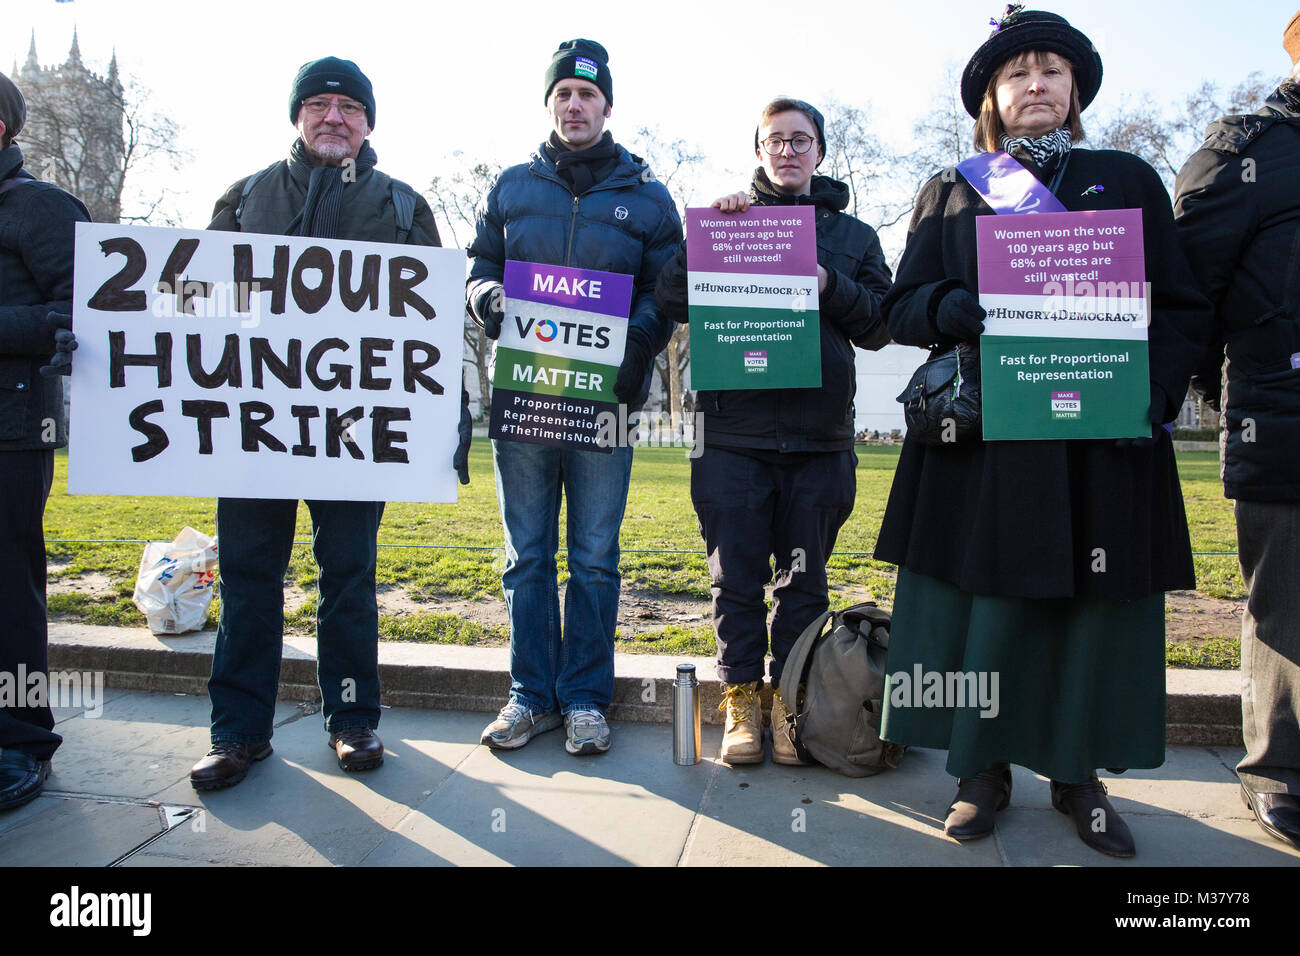 London, UK. 6th February, 2018. Fair vote campaigners take part in a 24-hour hunger strike organised by Make Votes - Stock Image